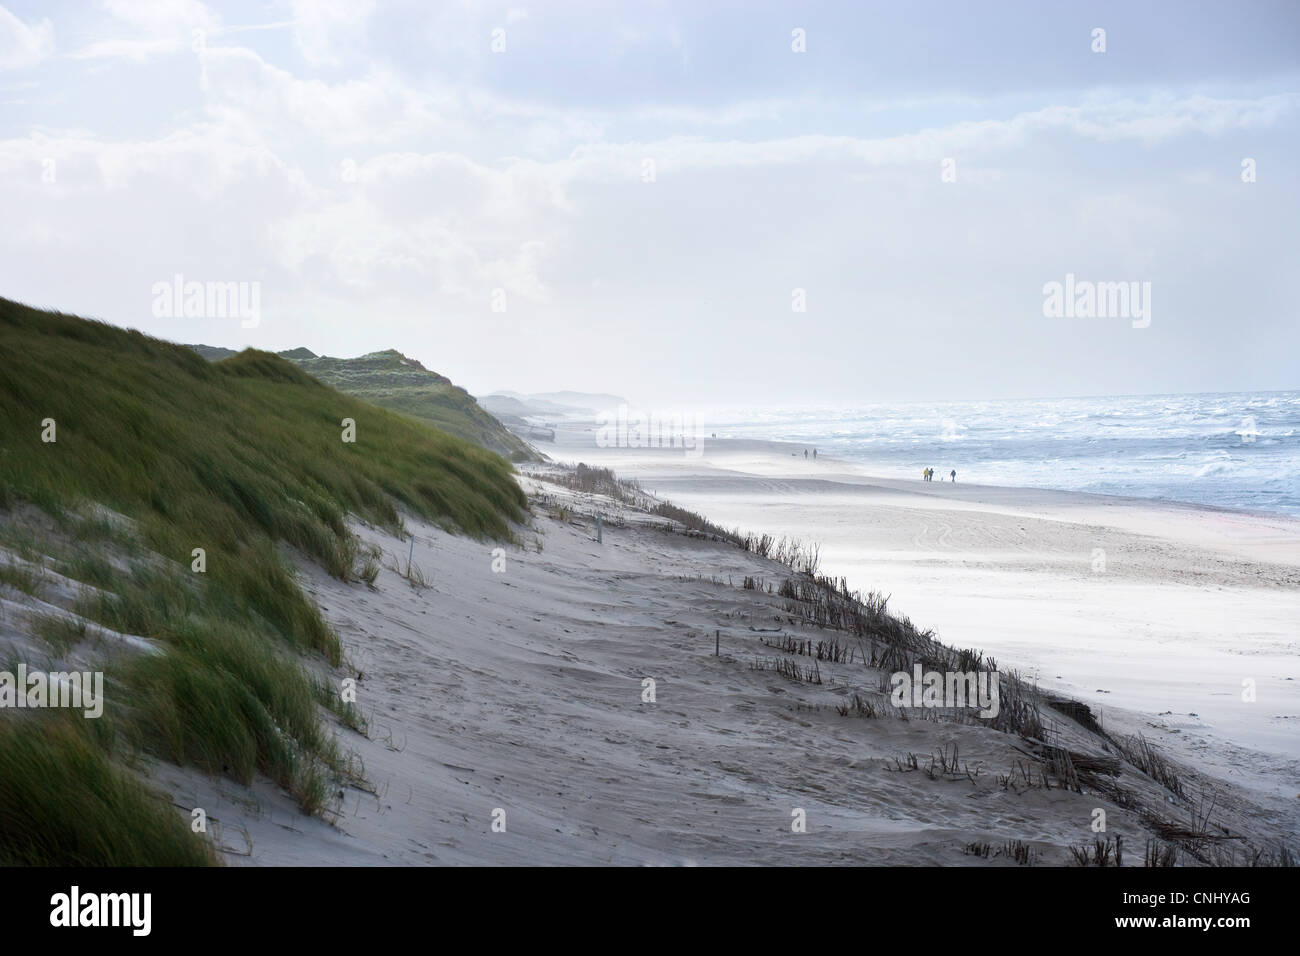 Sand dunes and beach of Sylt, Schleswig-Holstein, Germany - Stock Image